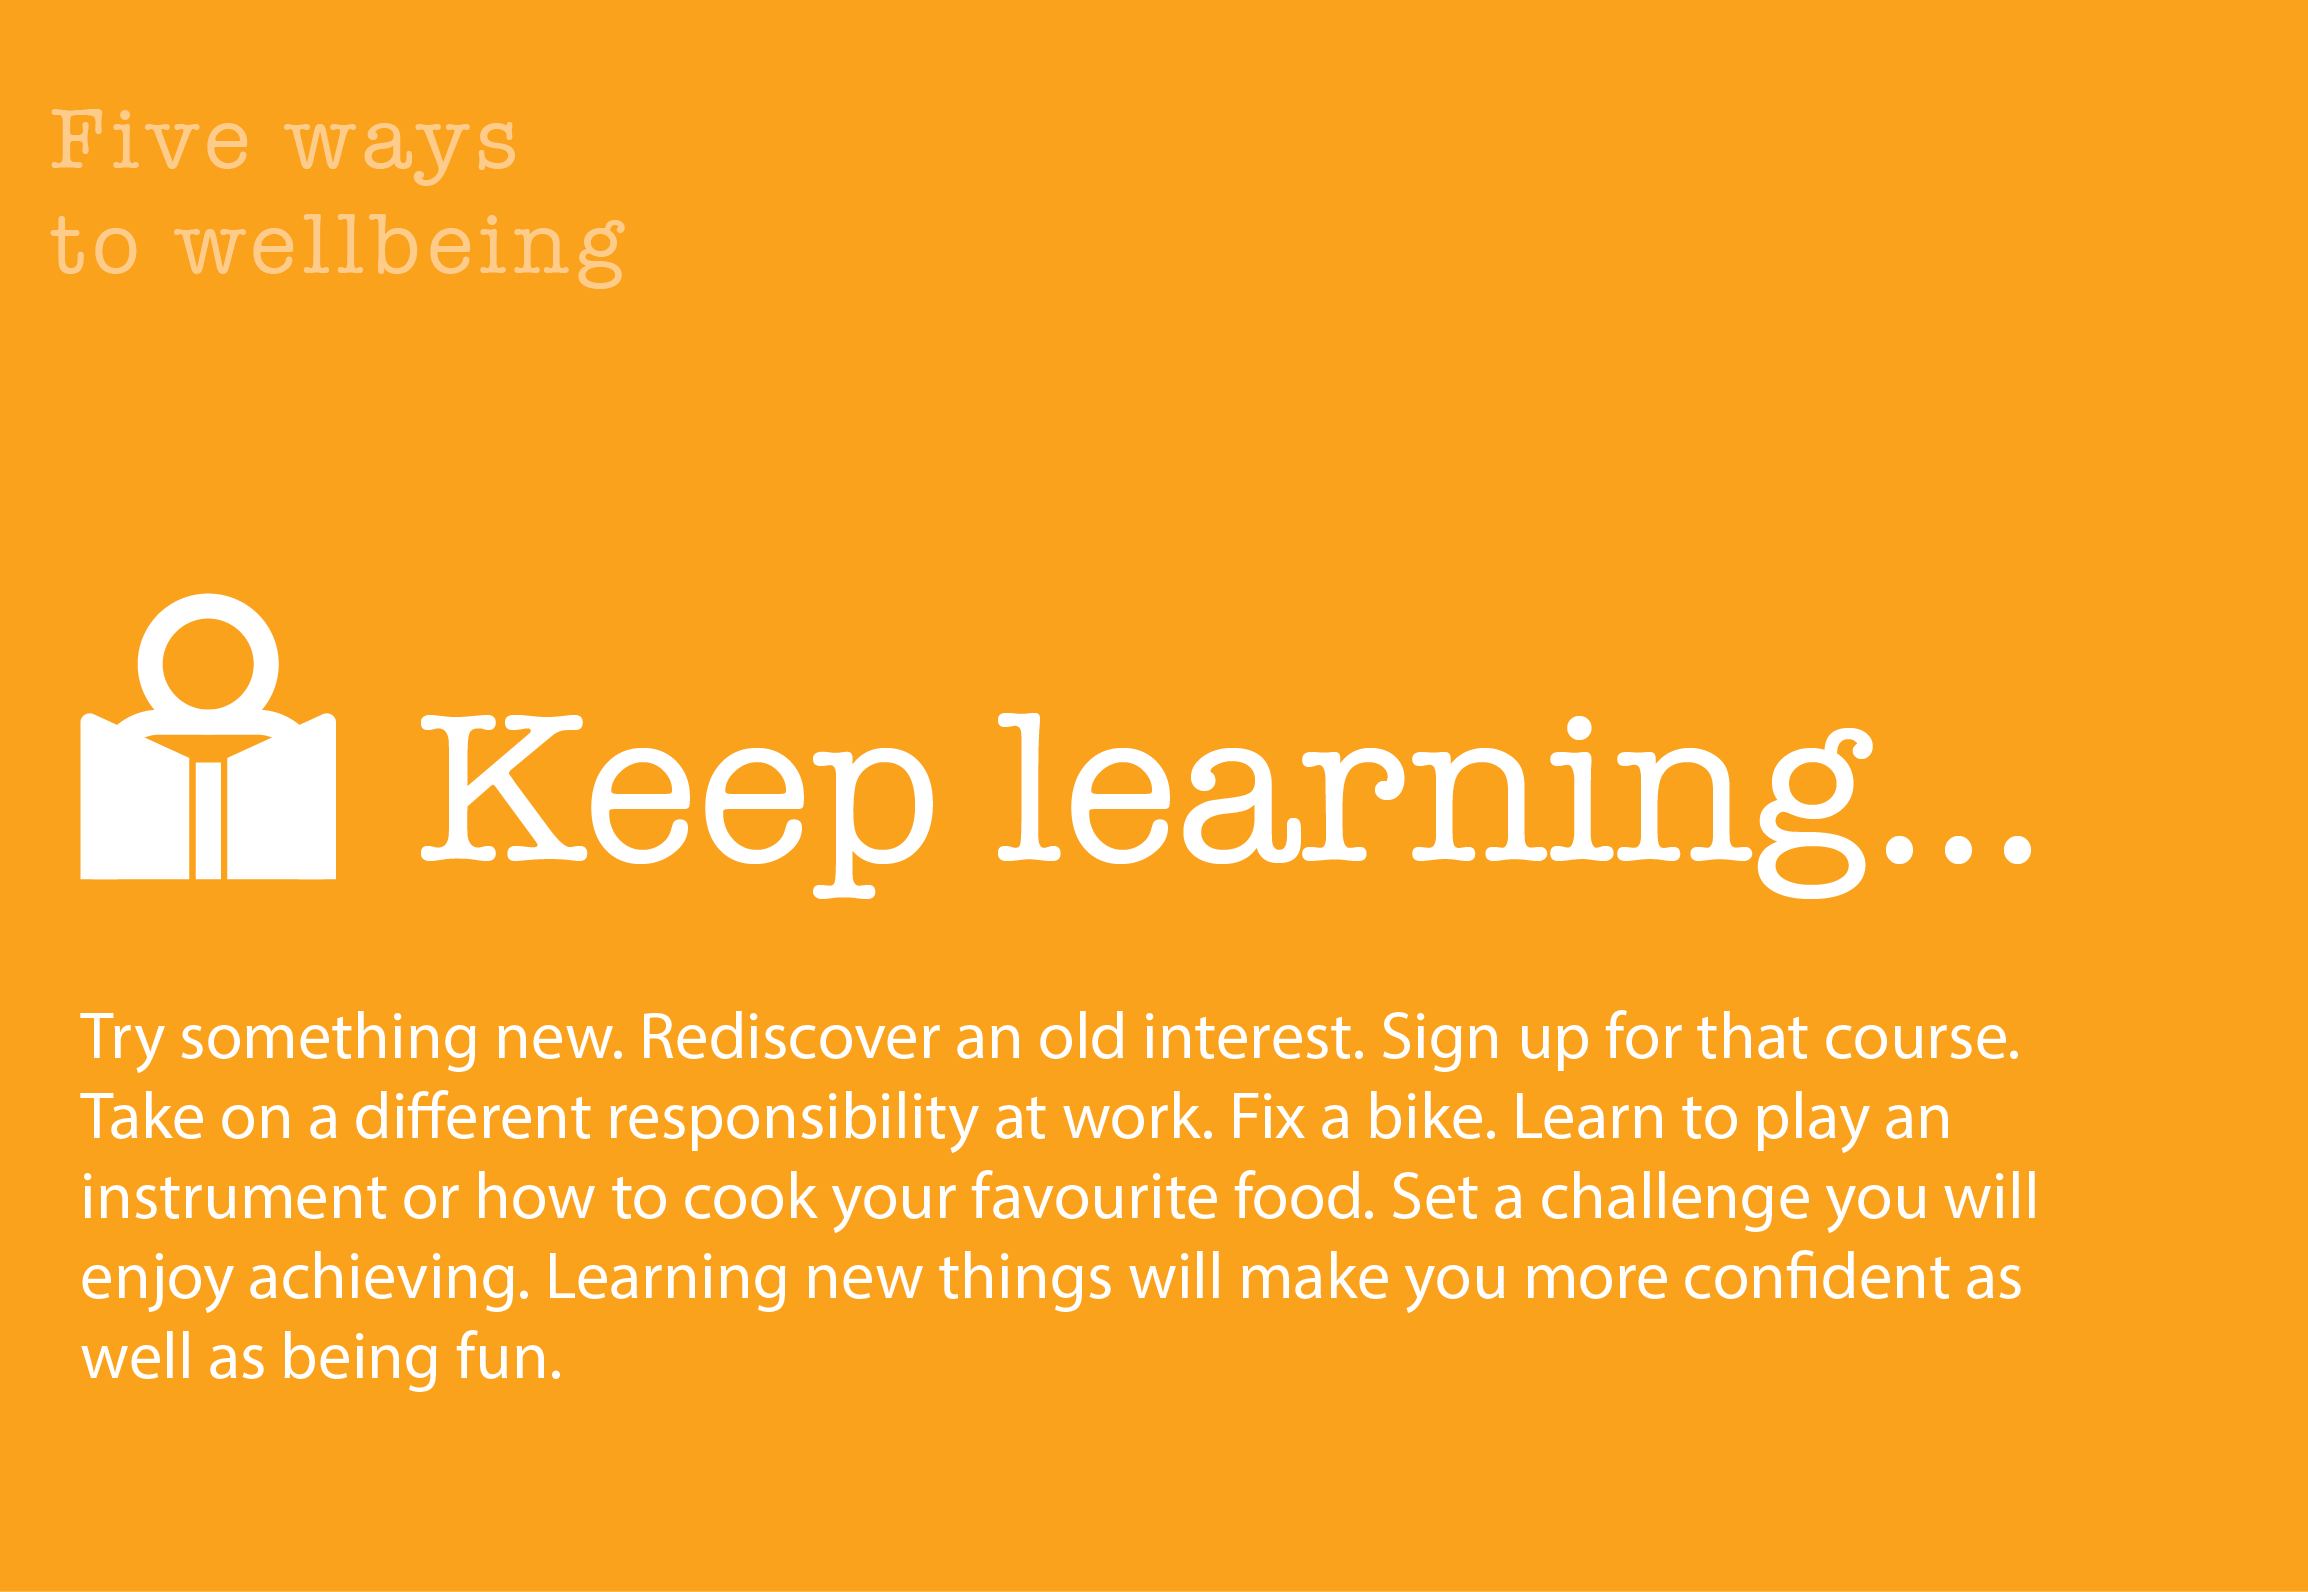 5 Ways to Wellbeing: Keep Learning. Try something new. Rediscover an old interest. Sign up for that course. Take on a different responsibility at work. Fix a bike. Learn to play an instrument or how to cook your favourite food. Set a challenge you will enjoy achieving. Learning new things will make you more confident as well as being fun.